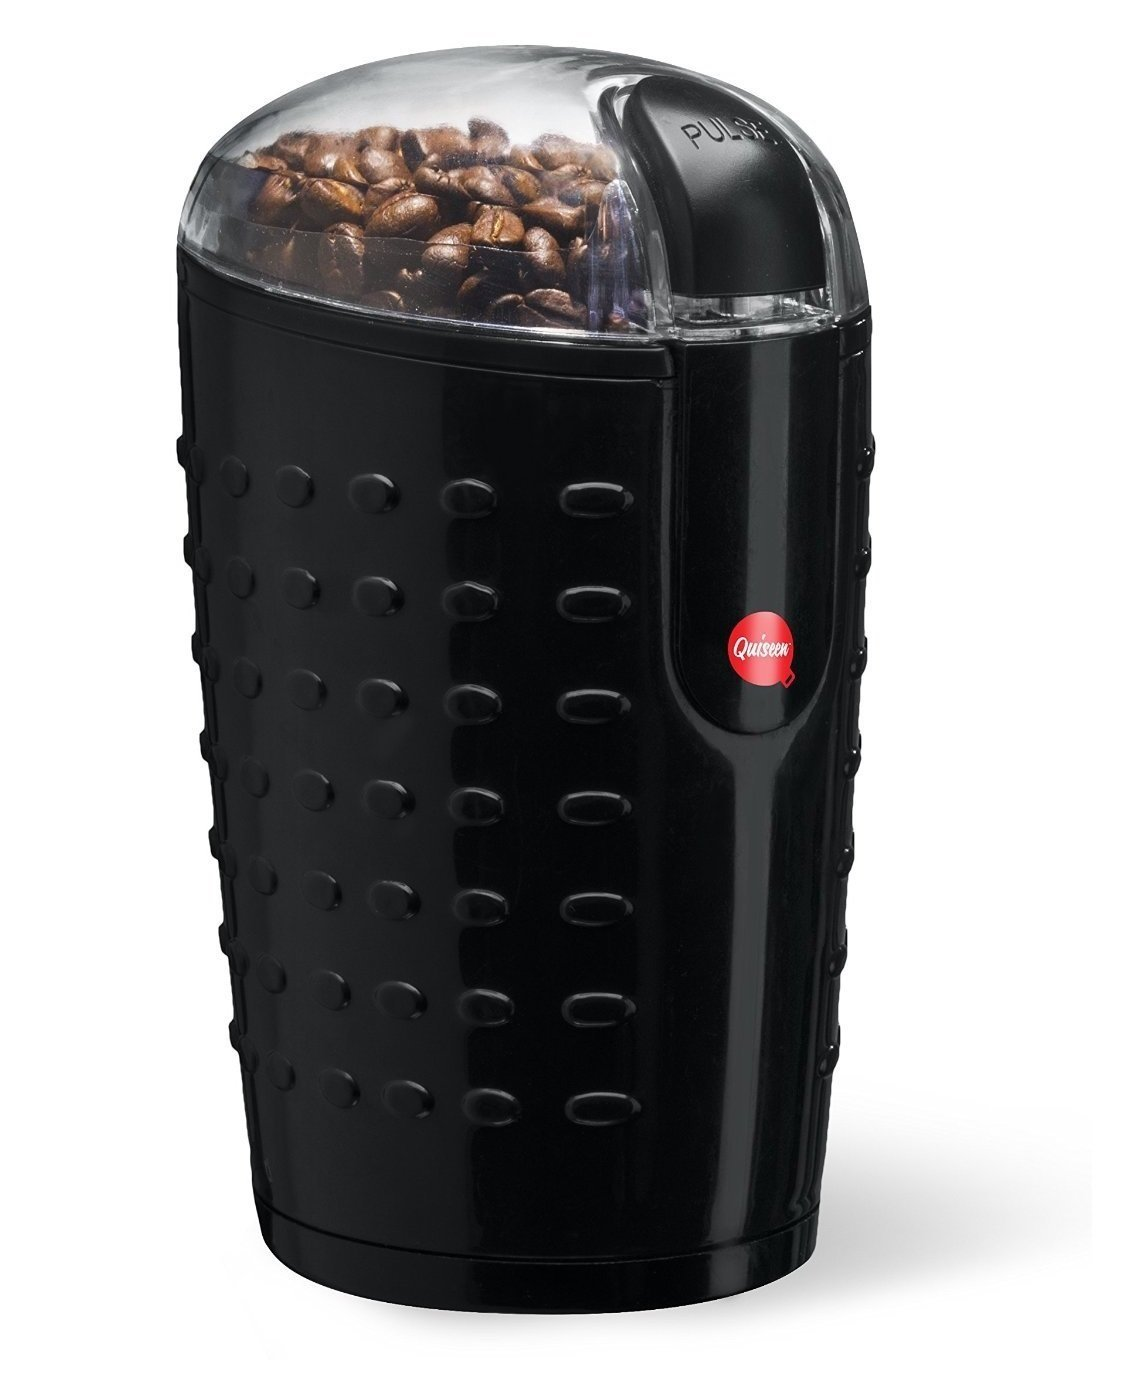 Quiseen One-Touch Electric Coffee Grinder. Grinds Coffee Beans, Spices, Nuts and Grains - Durable Stainless Steel Blades (Black) by Quiseen